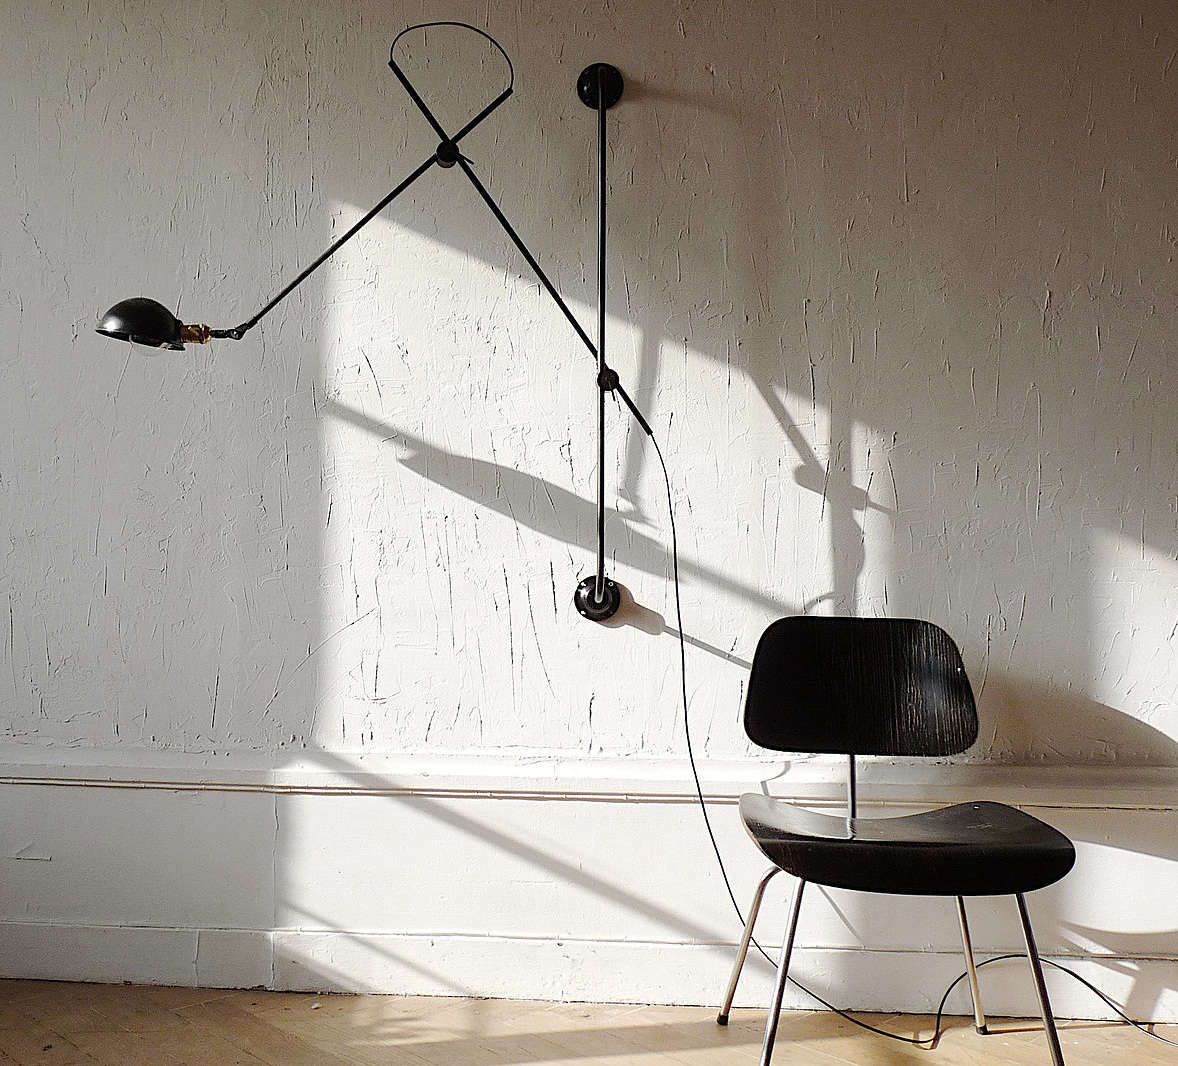 wo we adjustable two arms wall lamp in situ